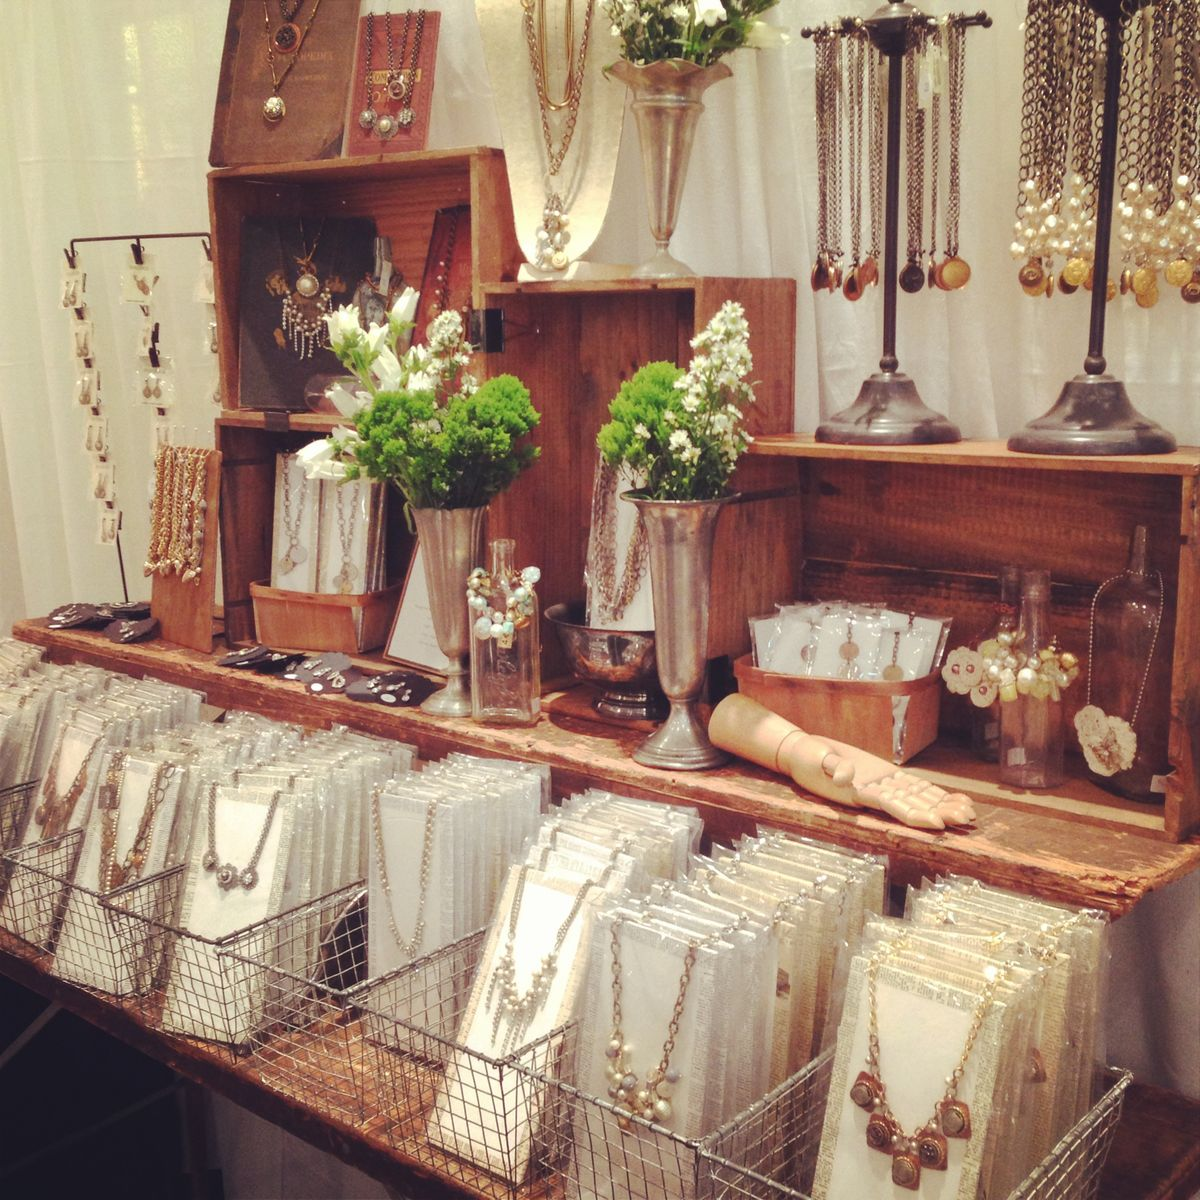 1000 images about Craft show ideas on Pinterest